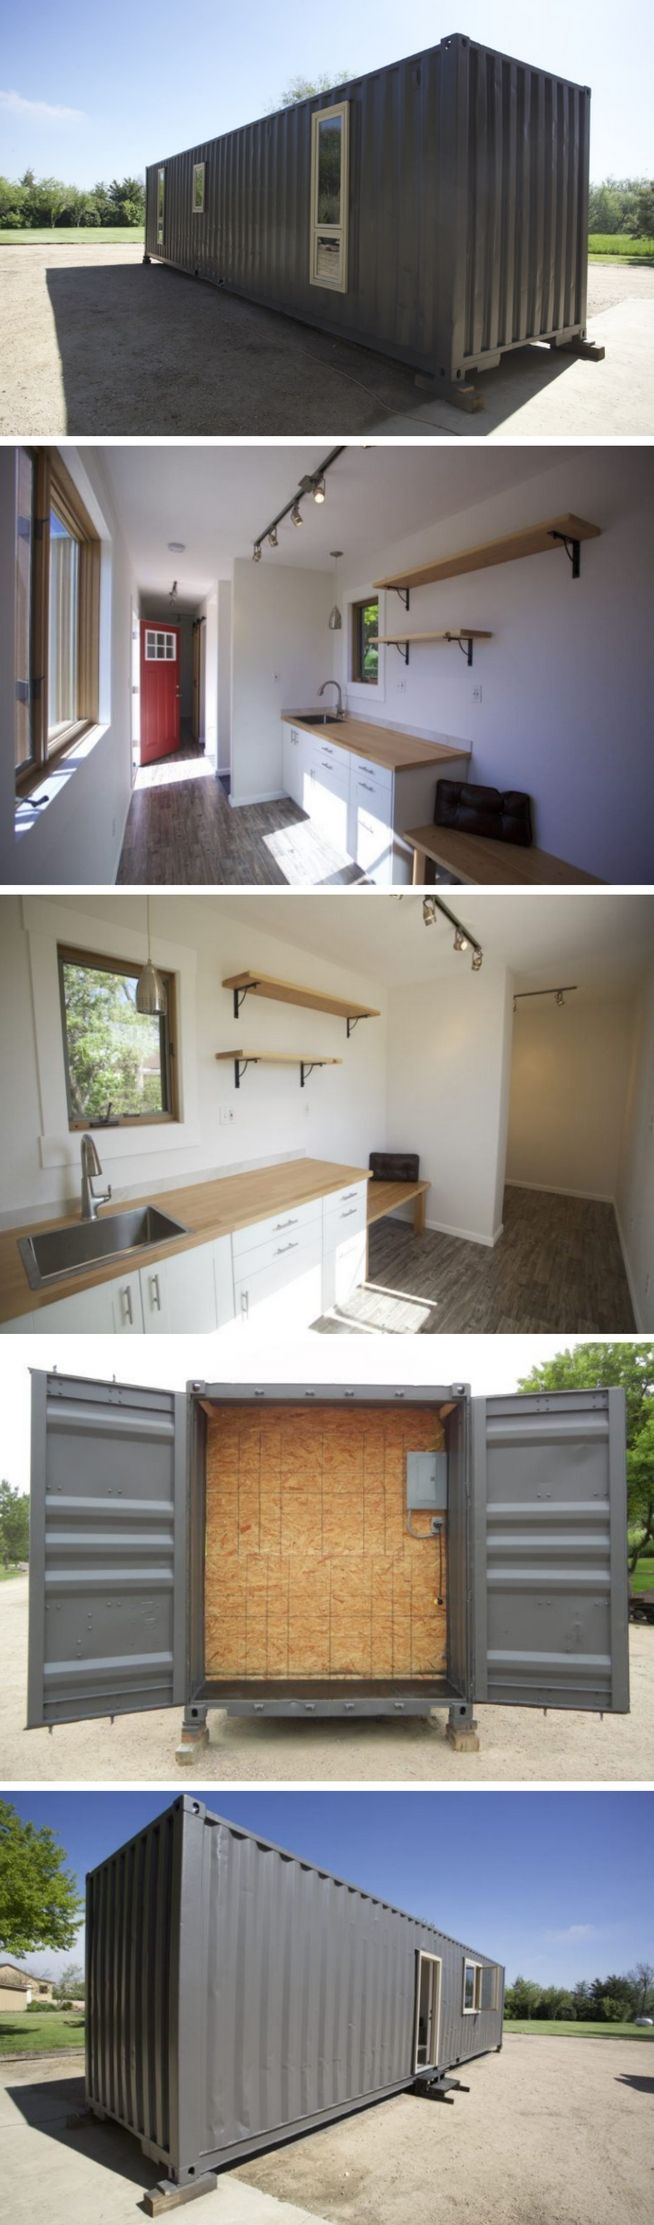 My dream house Shipping ContainersShipping Container HomesShipping